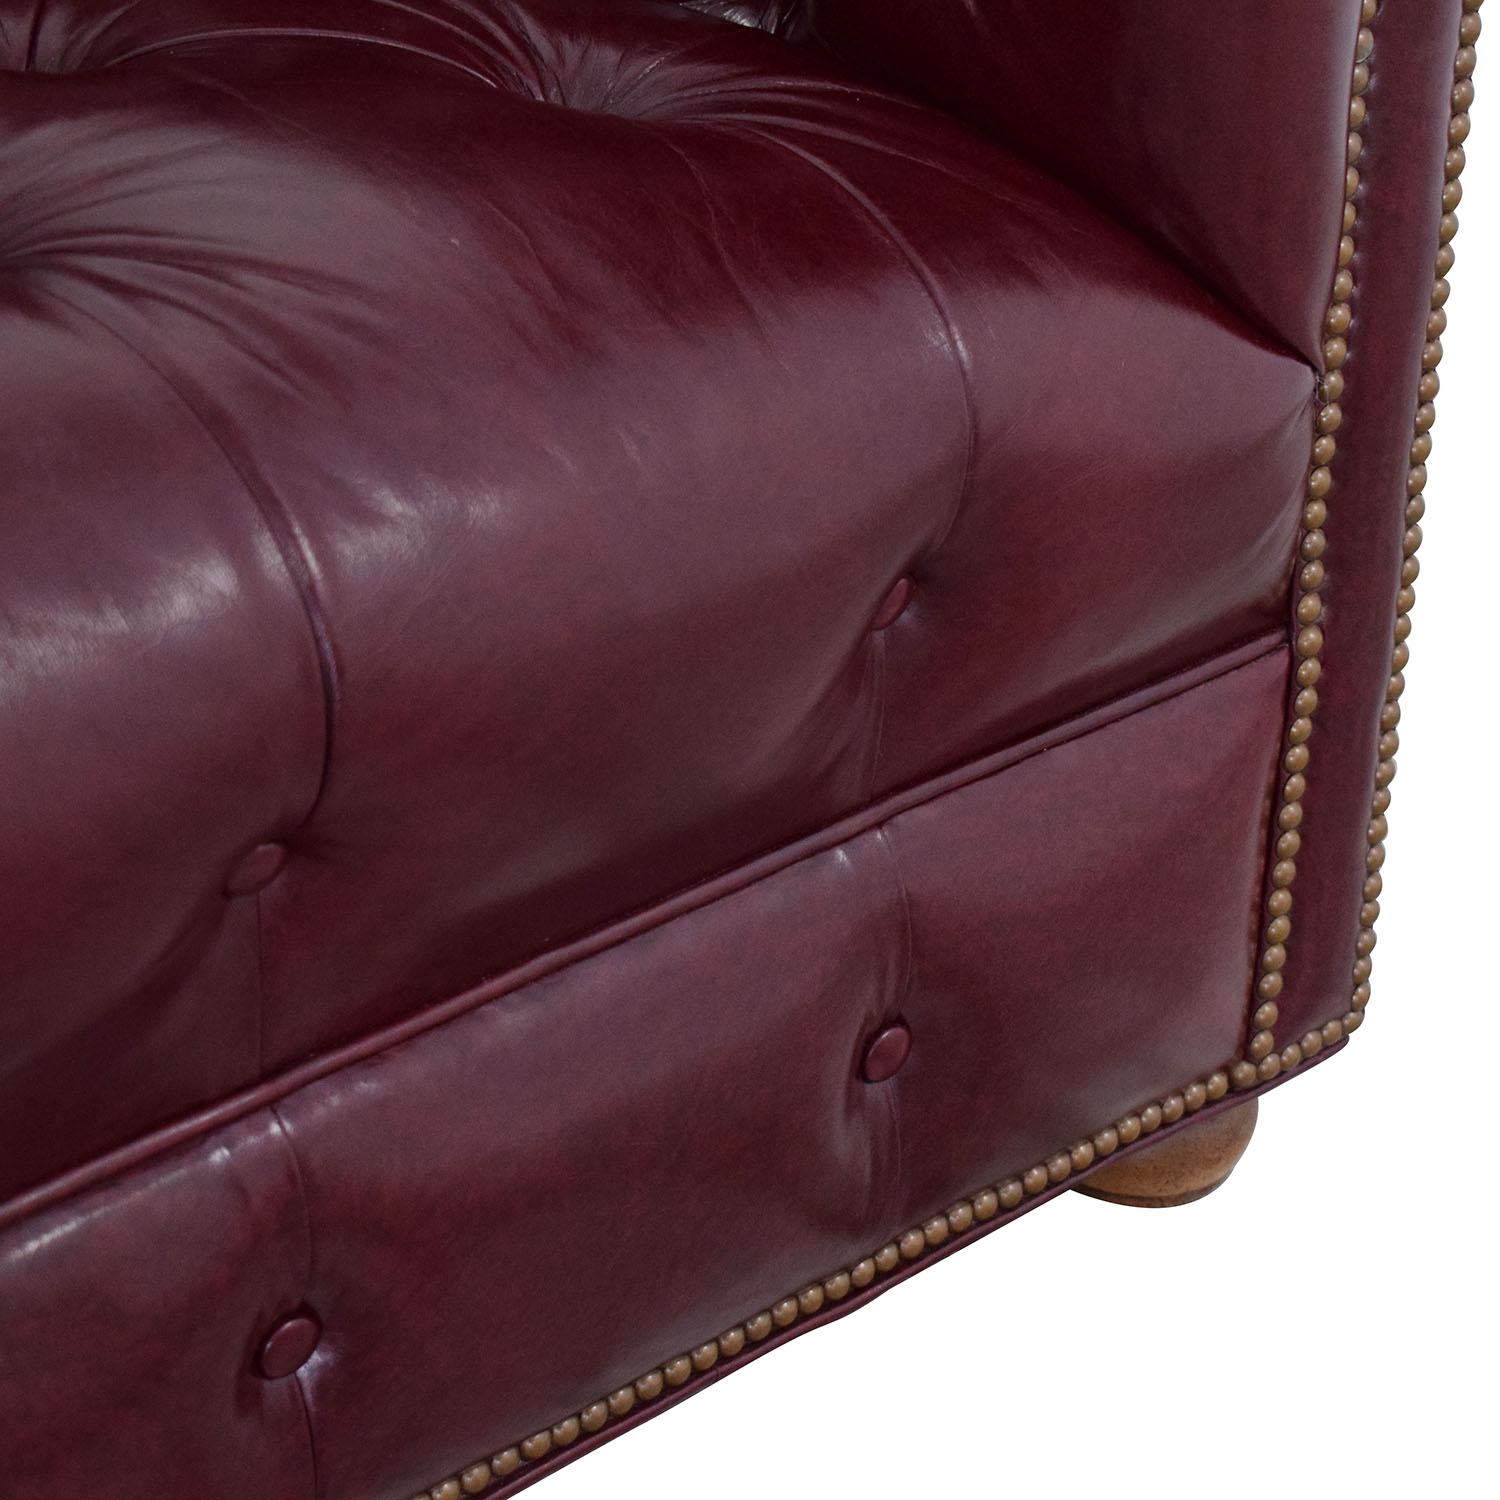 Ethan Allen Vintage Tufted Sofa with Nailheads sale